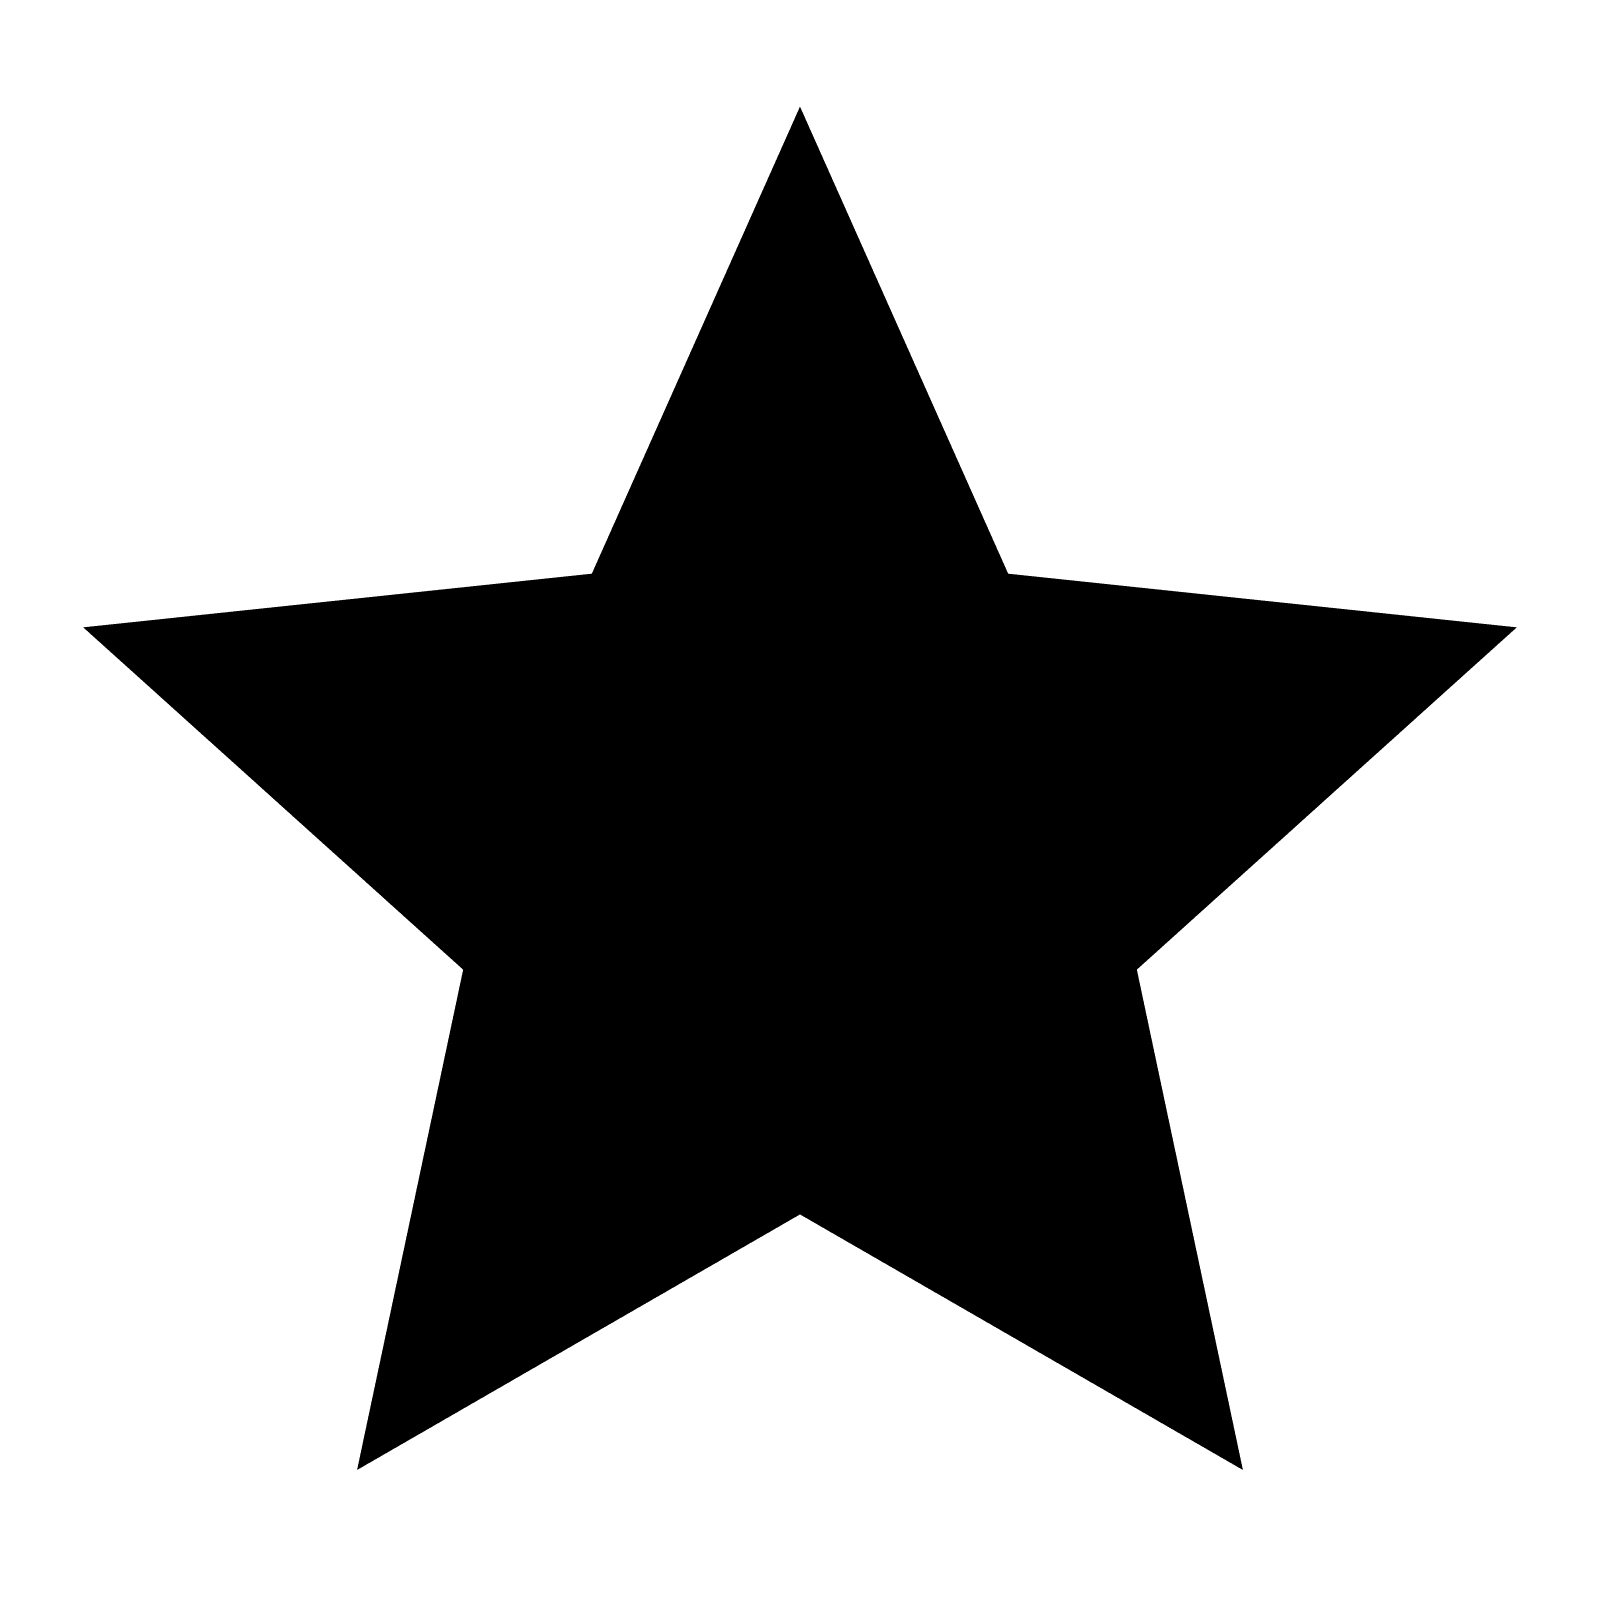 Star Android Clip art - black star png download - 1600 ...